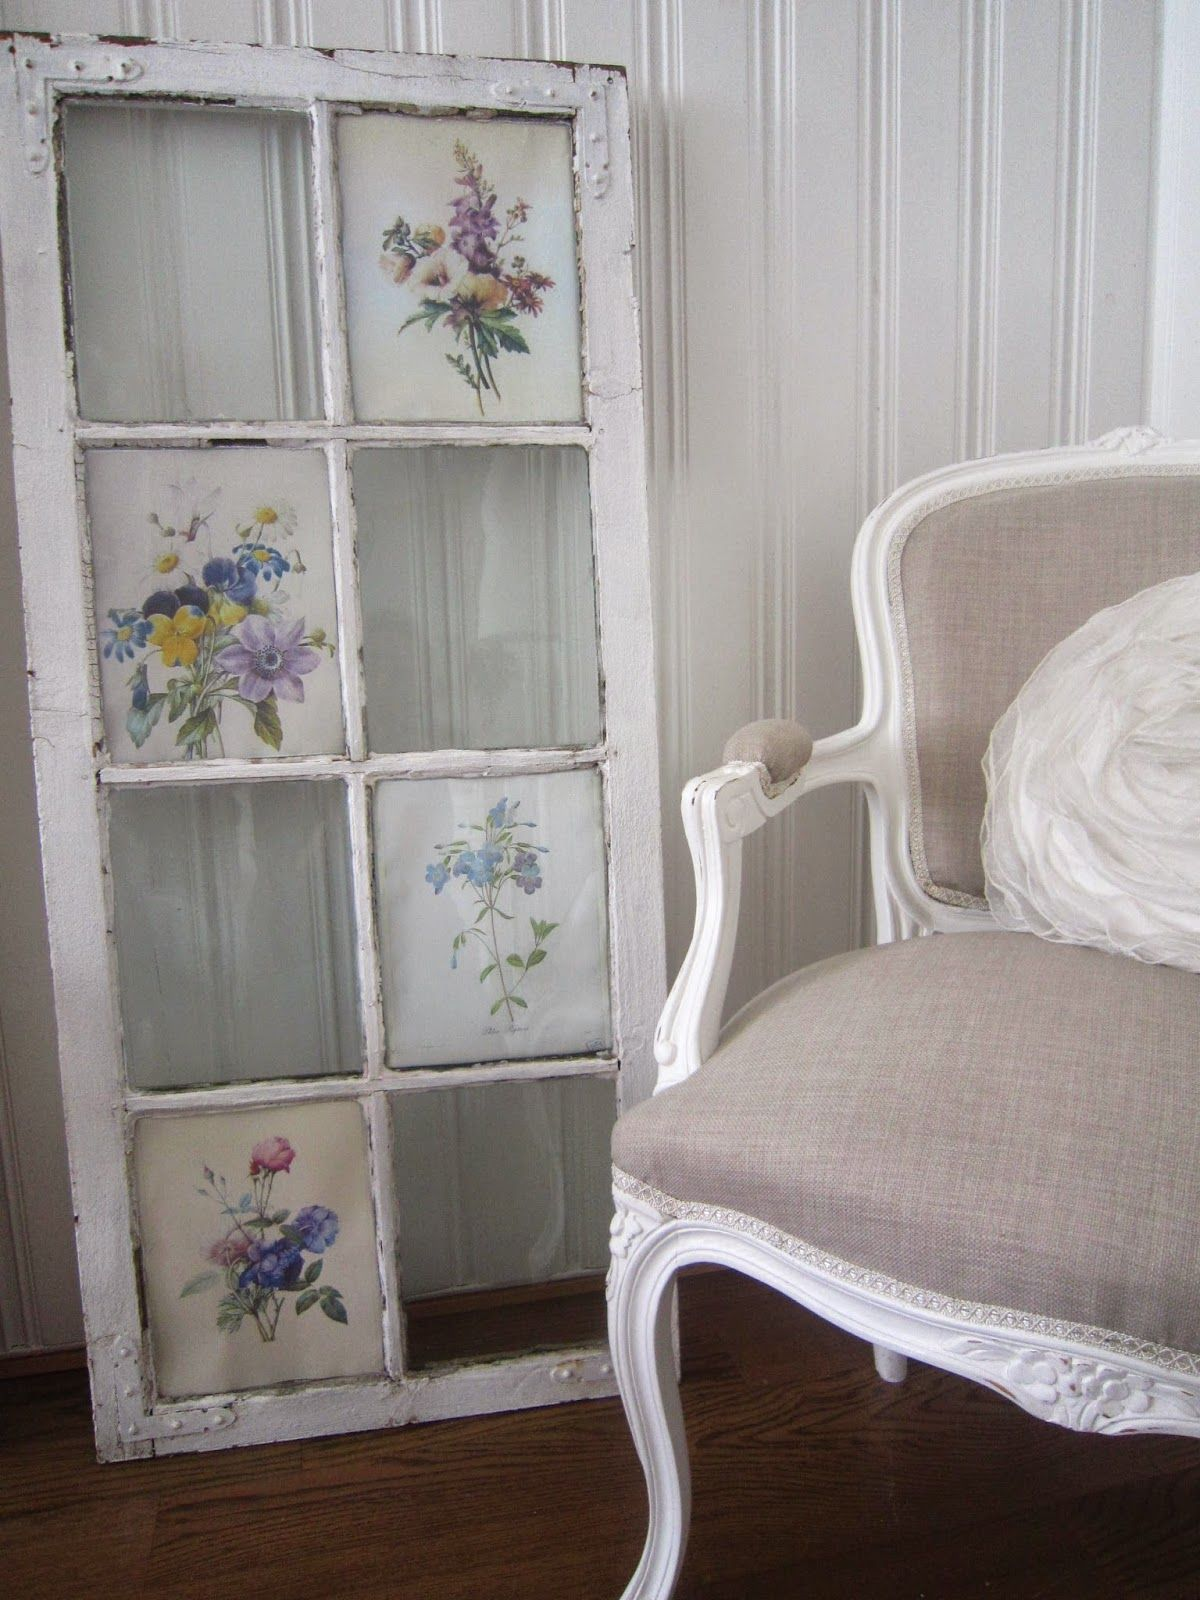 6 pane window frame ideas  hearts and white lilies  new house  pinterest  white lilies